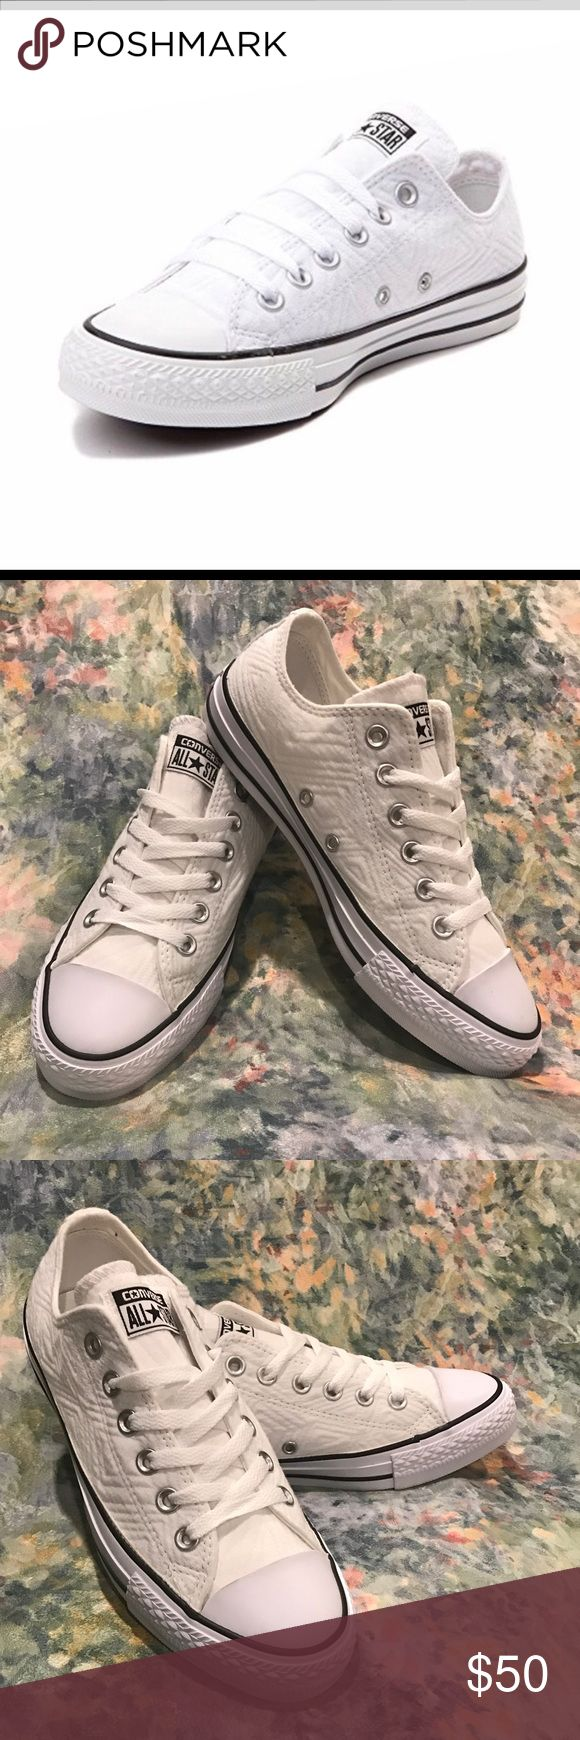 New lo jersey quilted converse Brand new. White quilted converse shoes. Sz 7.5 but fit like an 8.5 Converse Shoes Sneakers